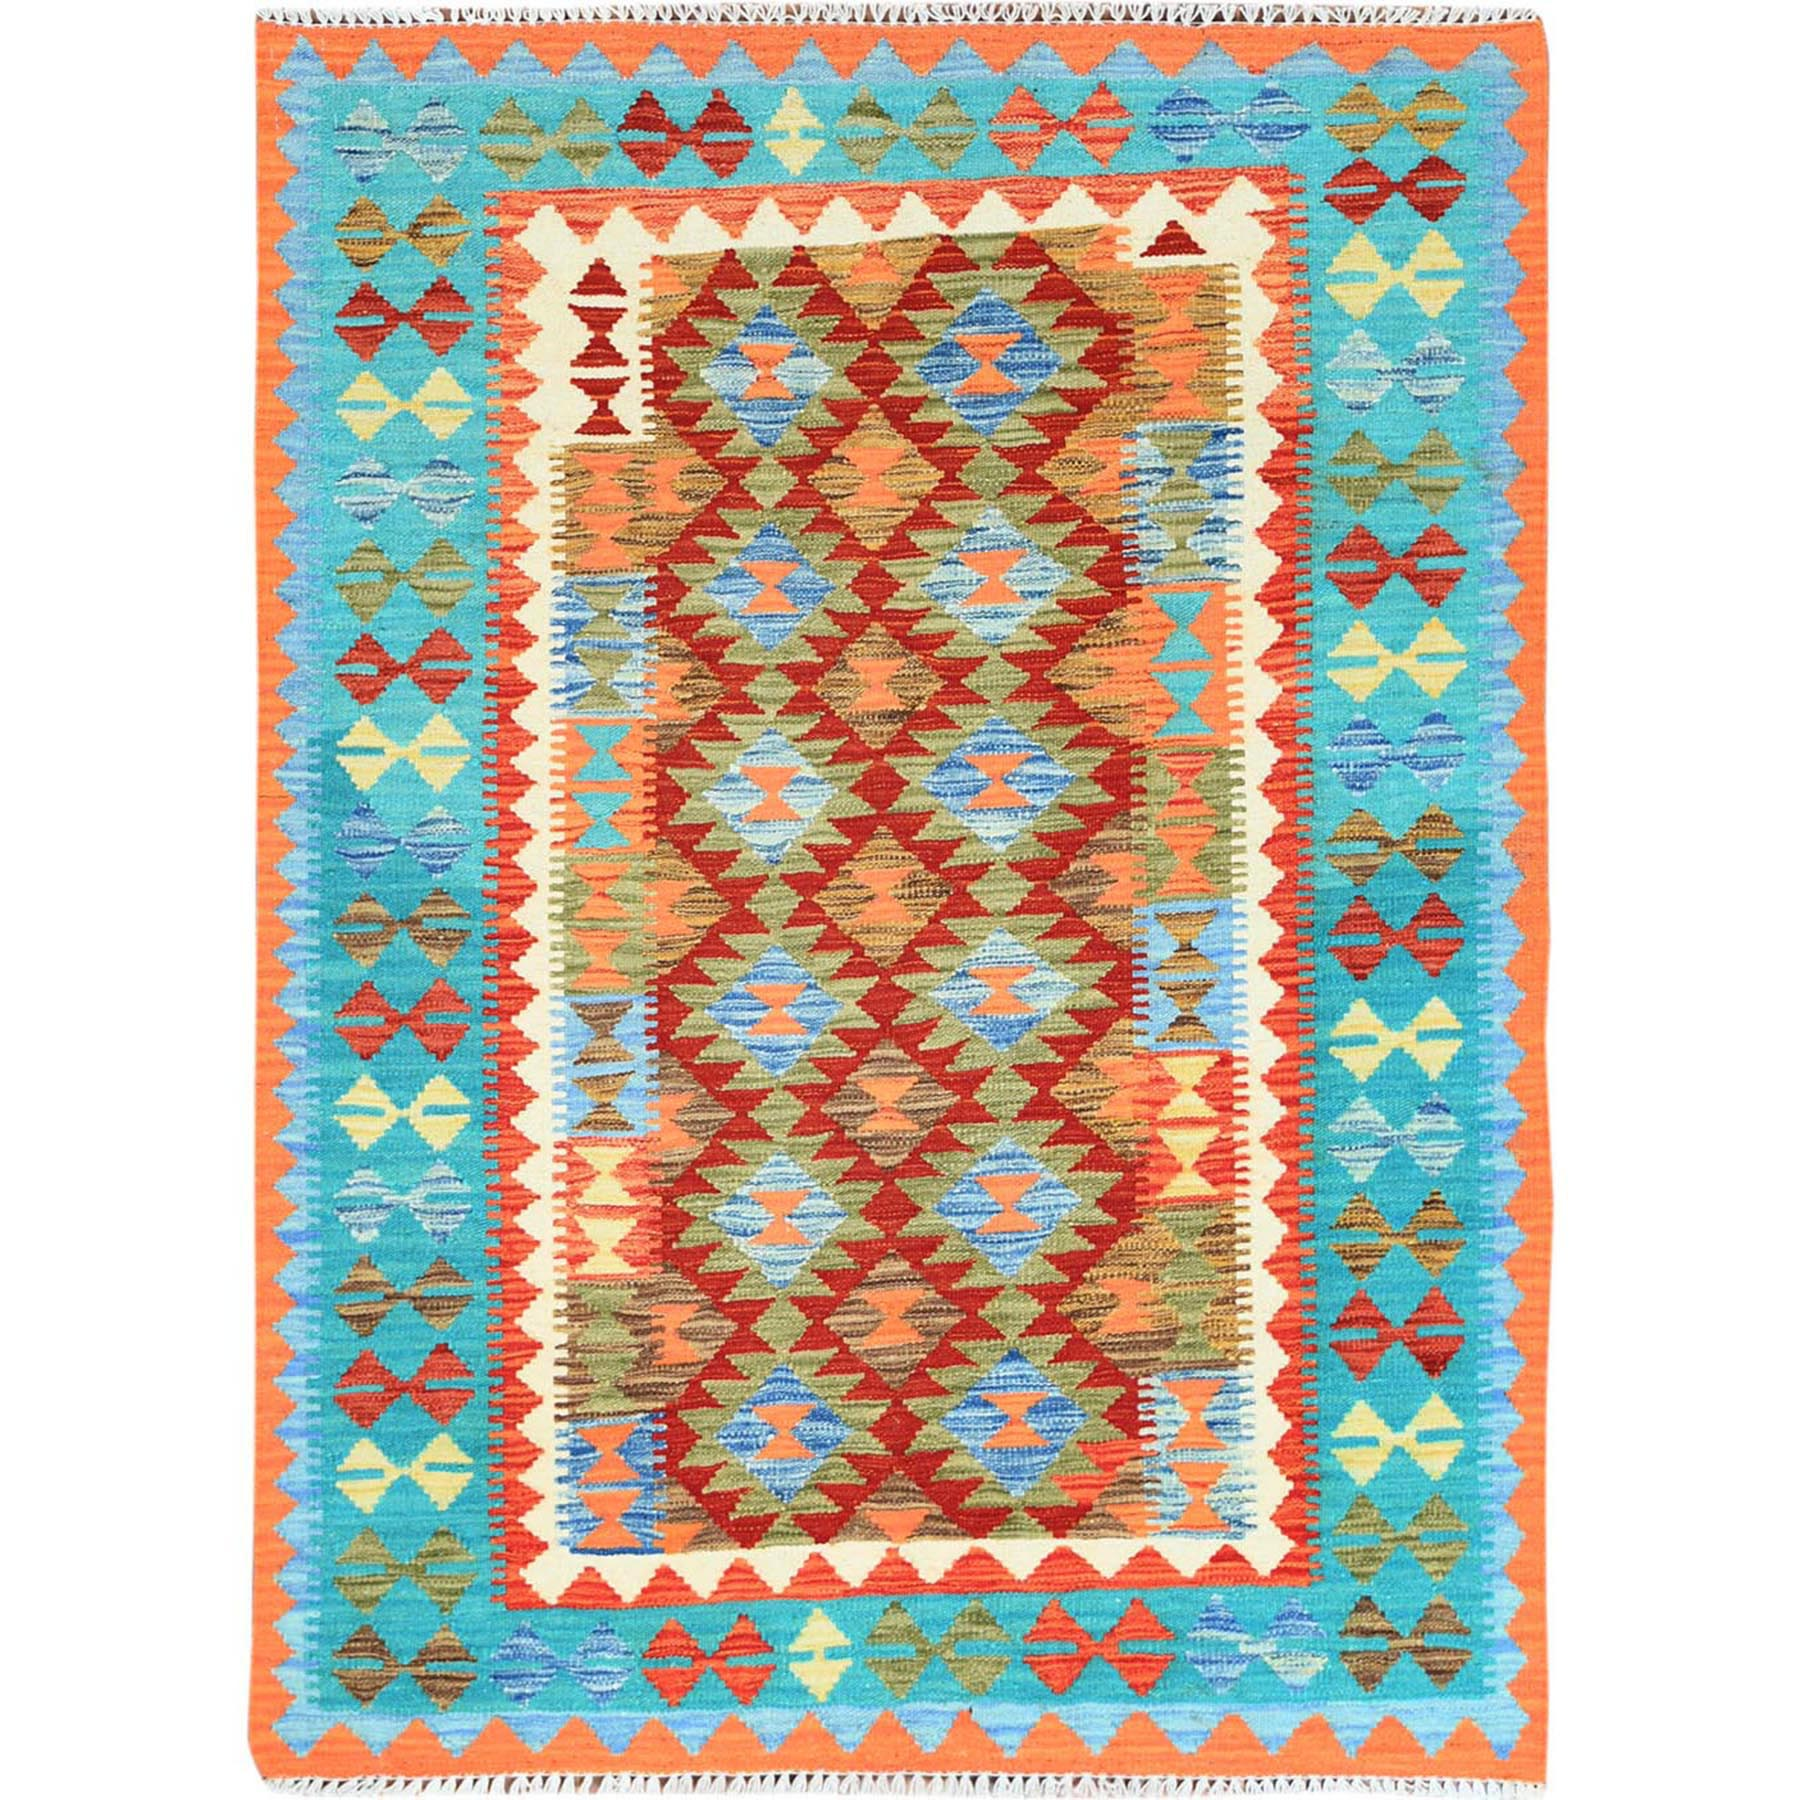 "4'2""x5'6"" Colorful Afghan Kilim Reversible Pure Vibrant Wool Hand Woven Oriental Rug"